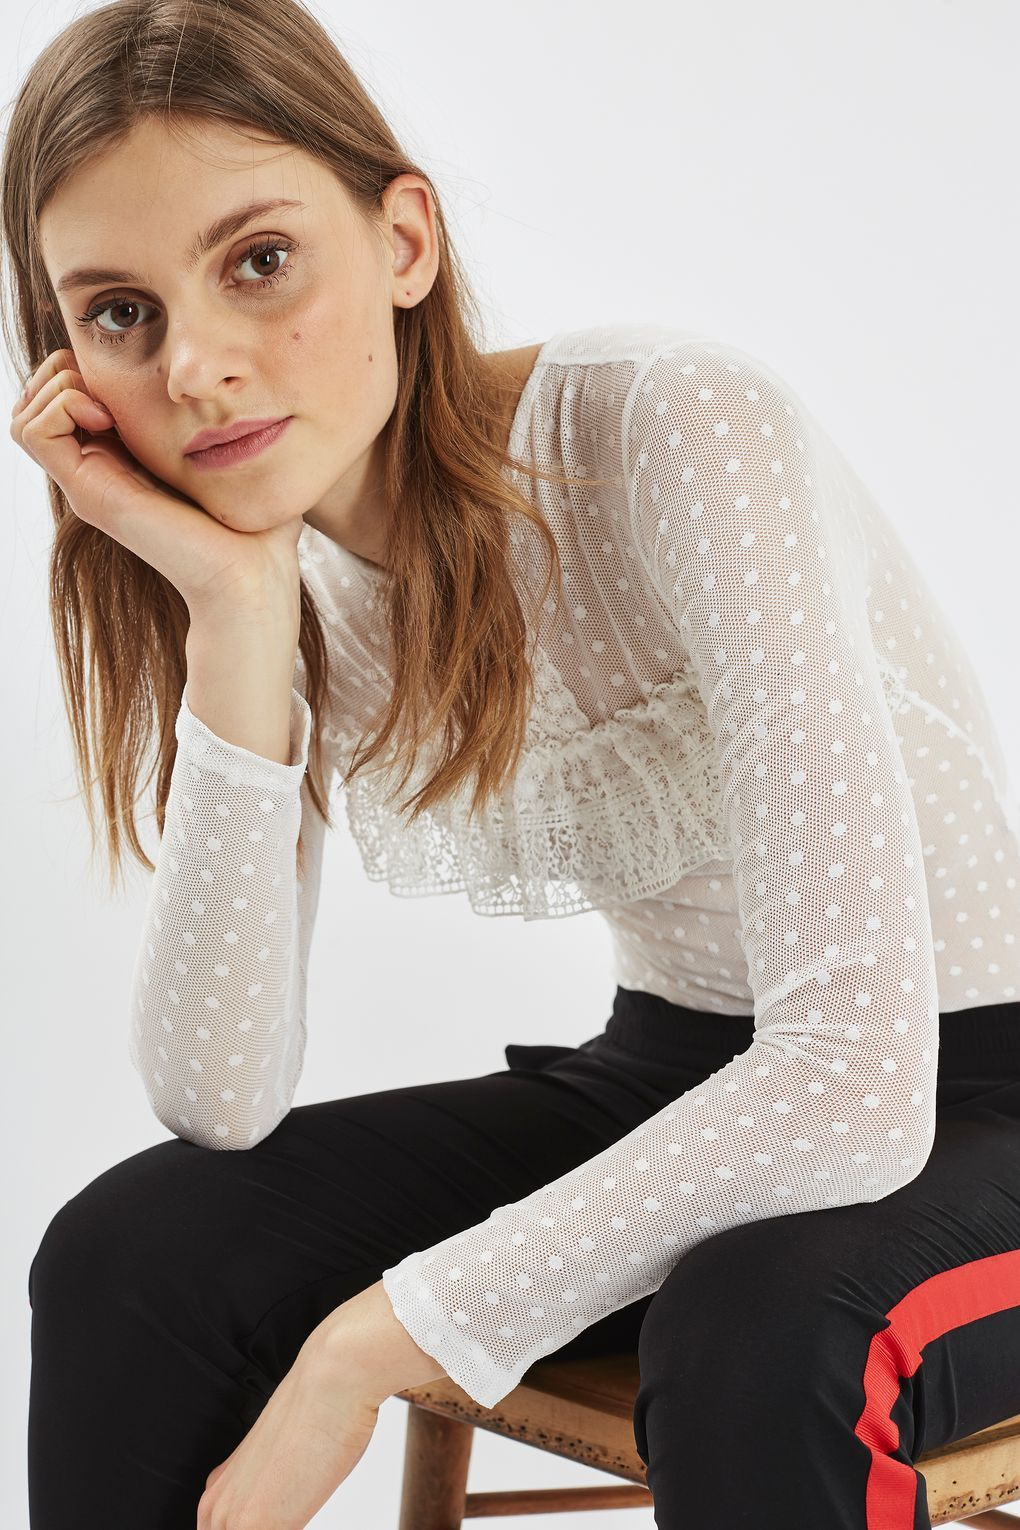 Lace bodysuit styles  Lace Spot Mesh Long Sleeve Body  Tops  Clothing  Body top Bodies